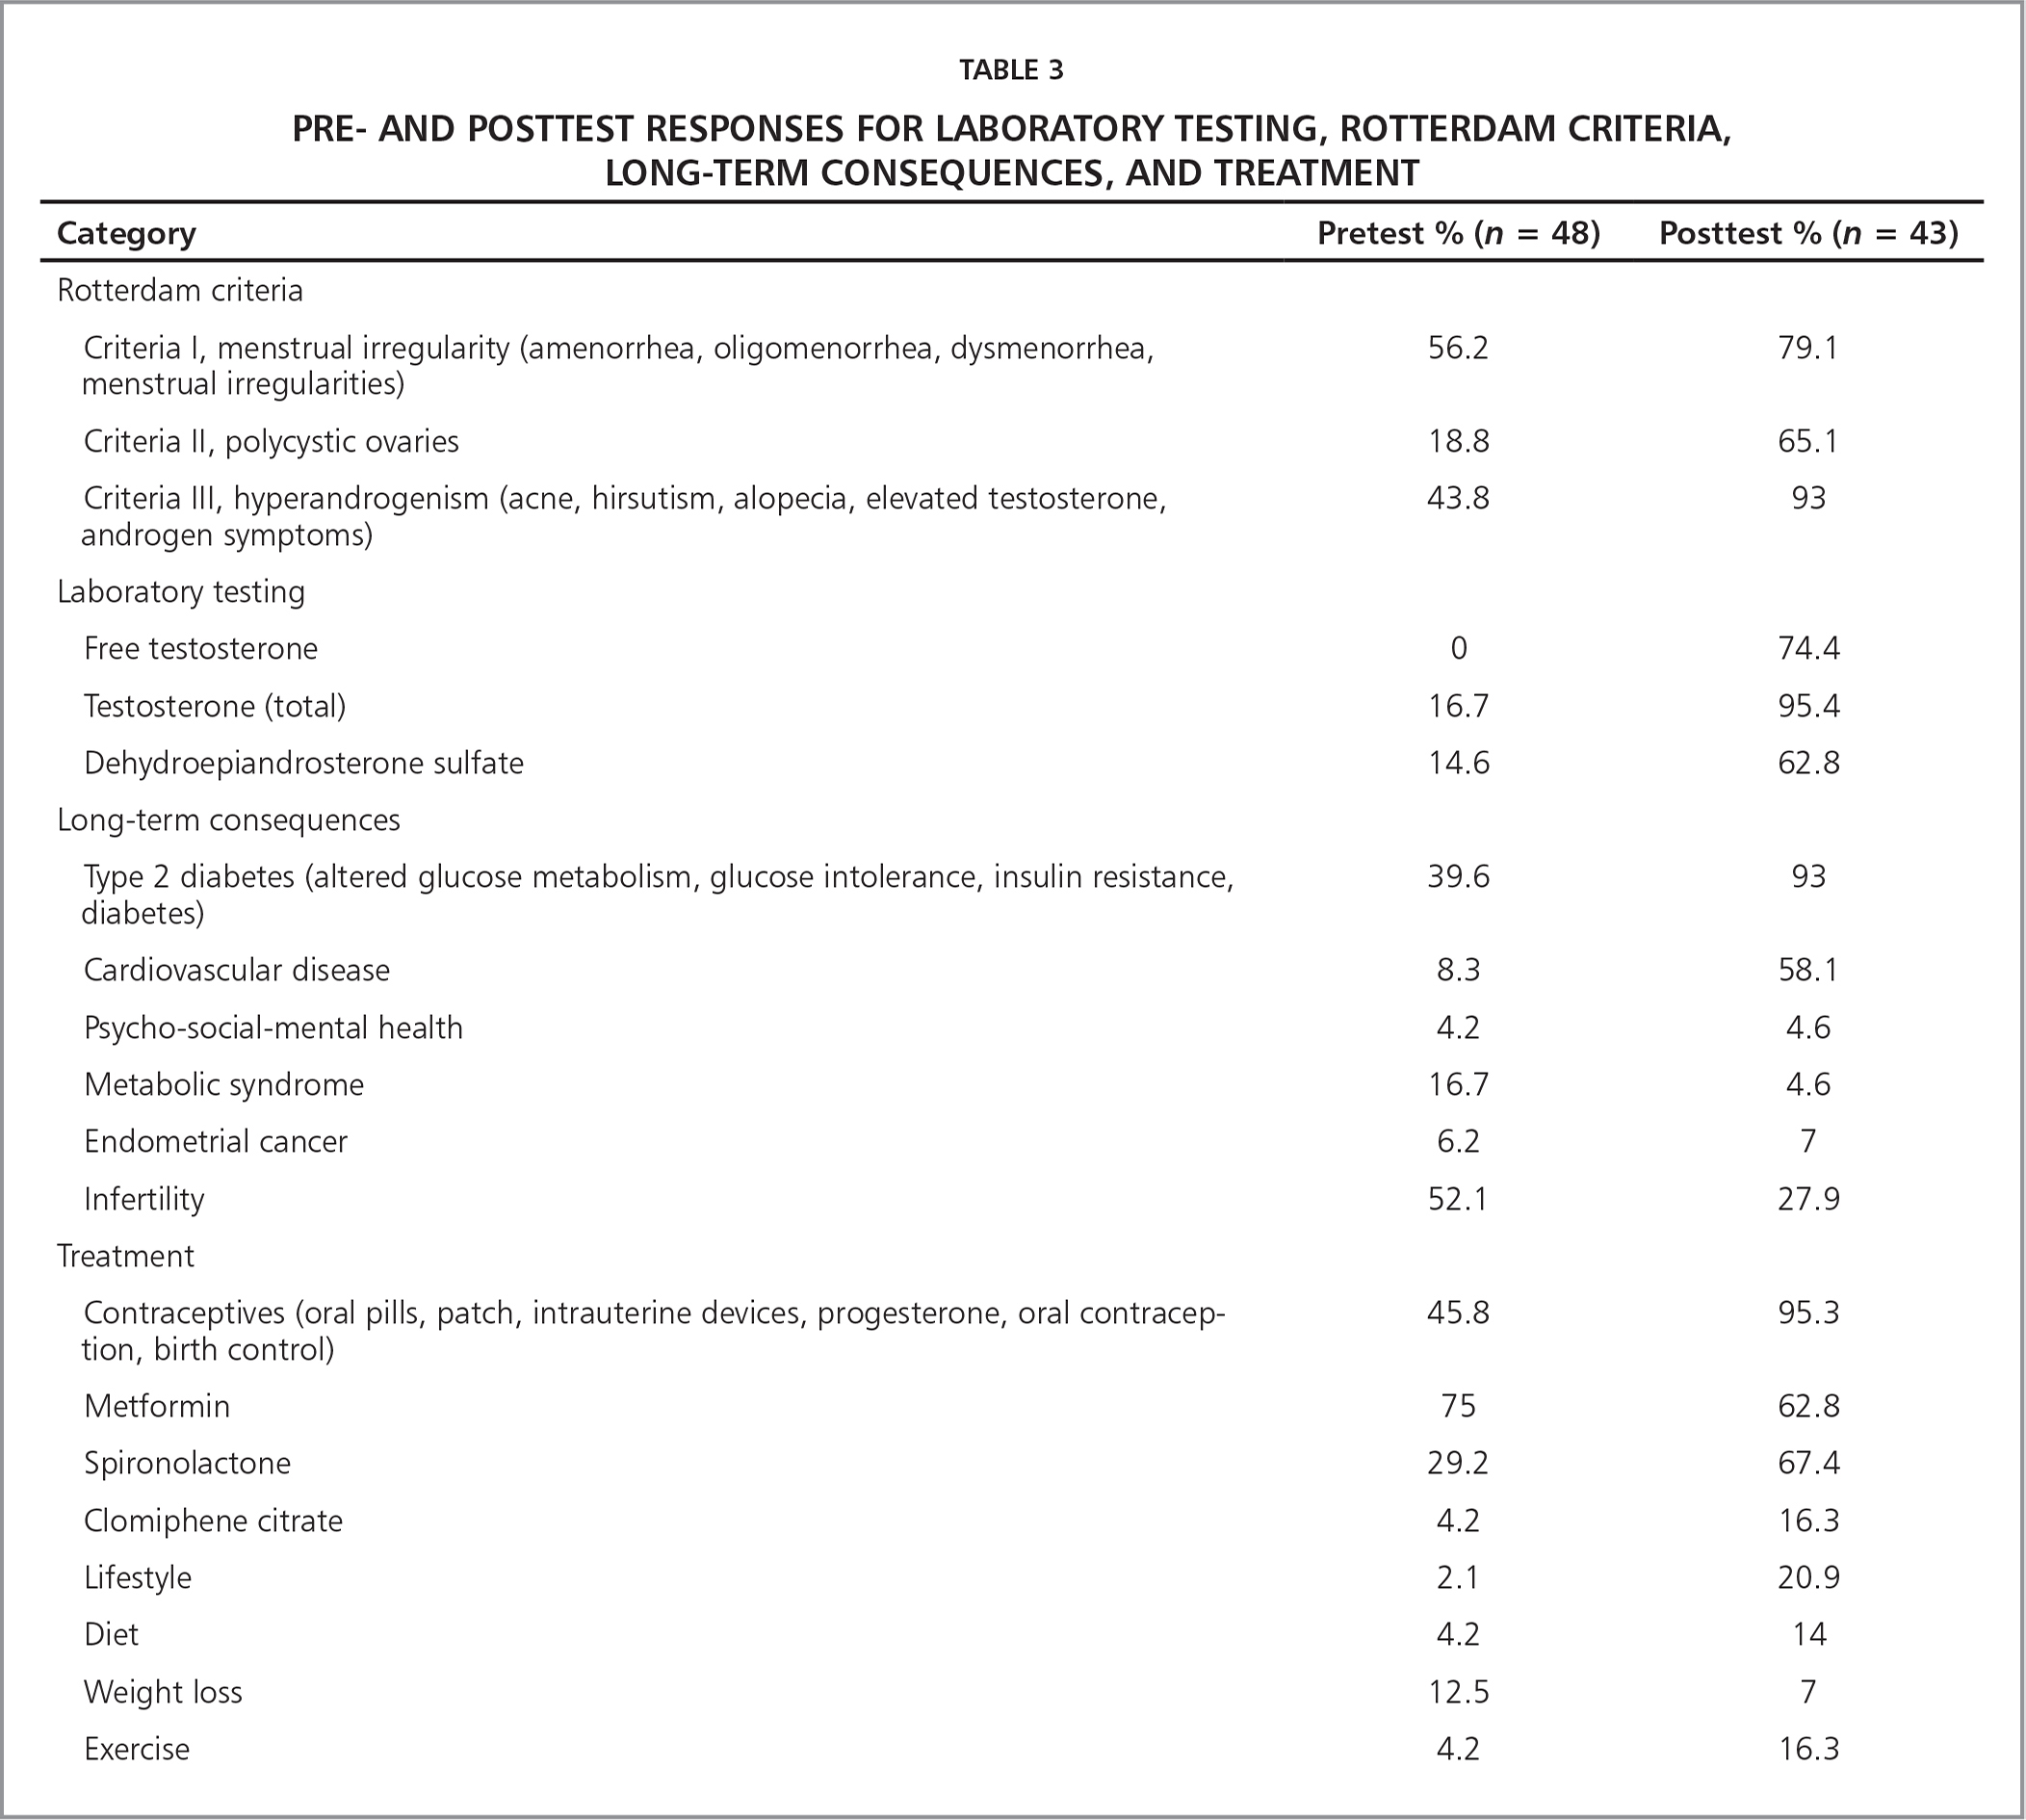 Pre- and Posttest Responses for Laboratory Testing, Rotterdam Criteria, Long-Term Consequences, and Treatment